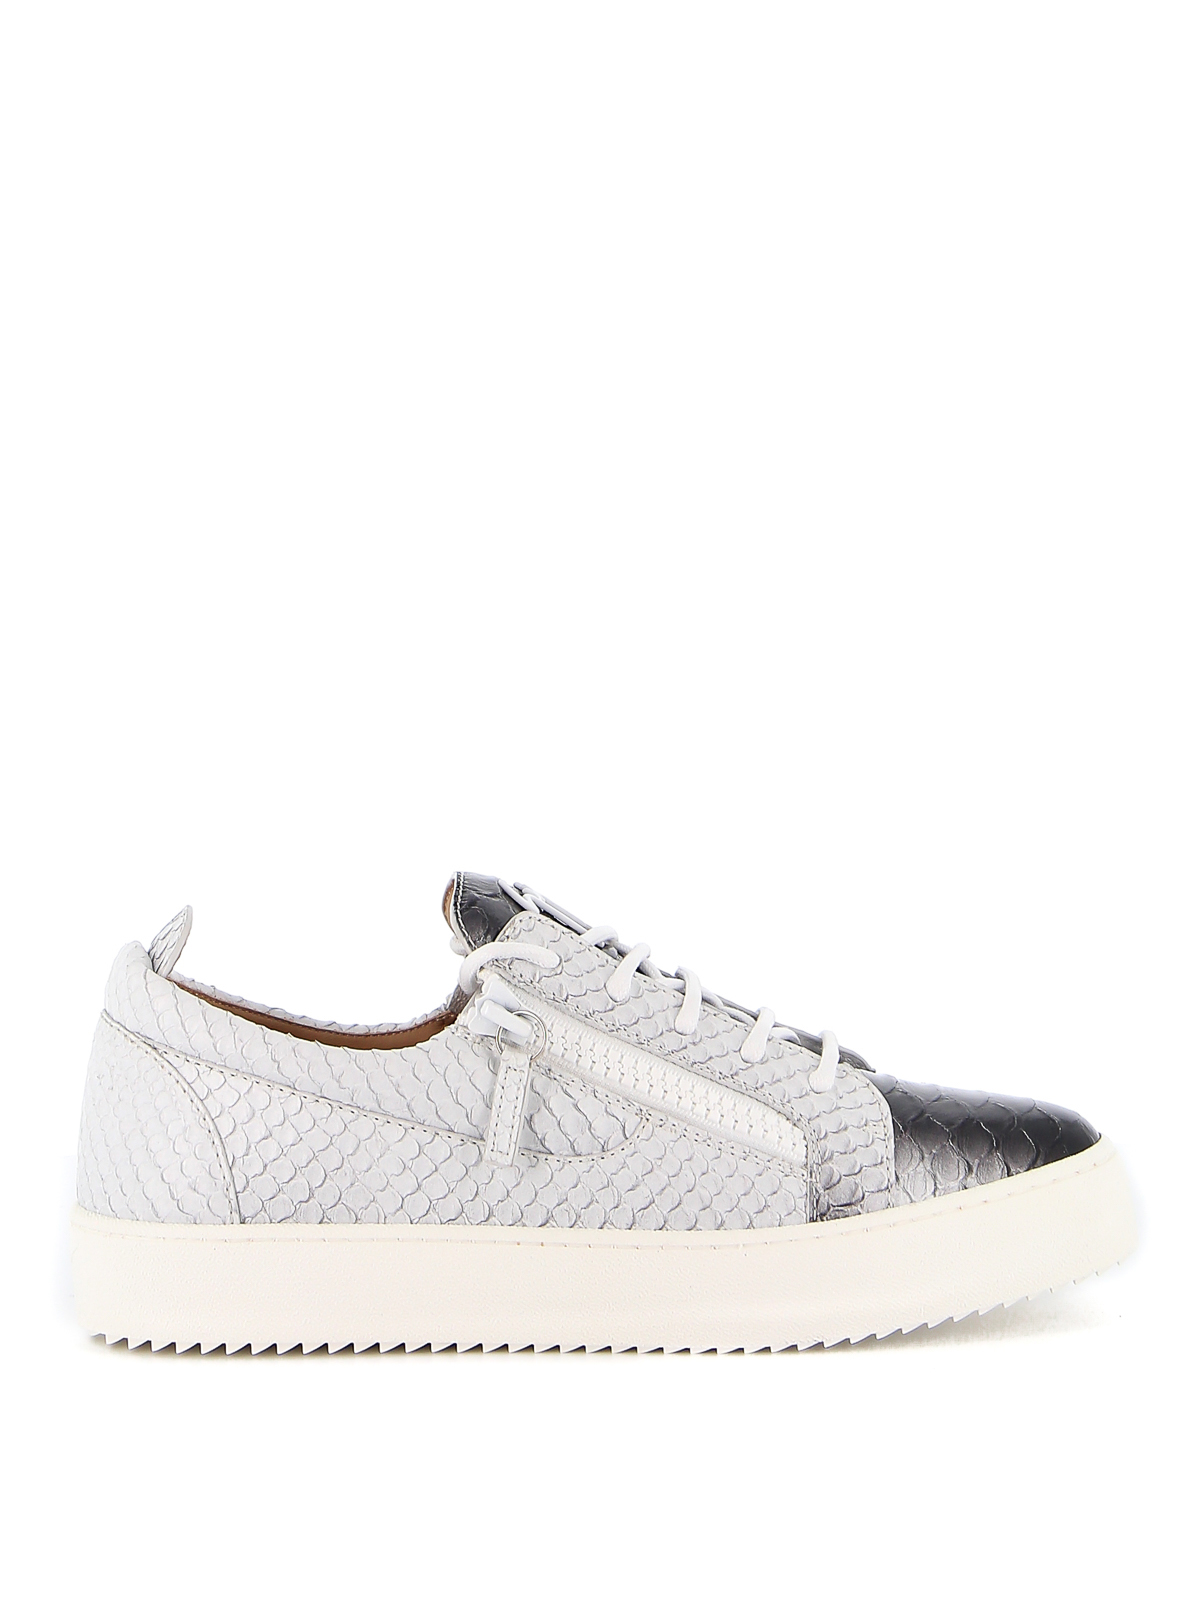 Giuseppe Zanotti Leathers MAY LONDON SCALES EFFECT LEATHER SNEAKERS